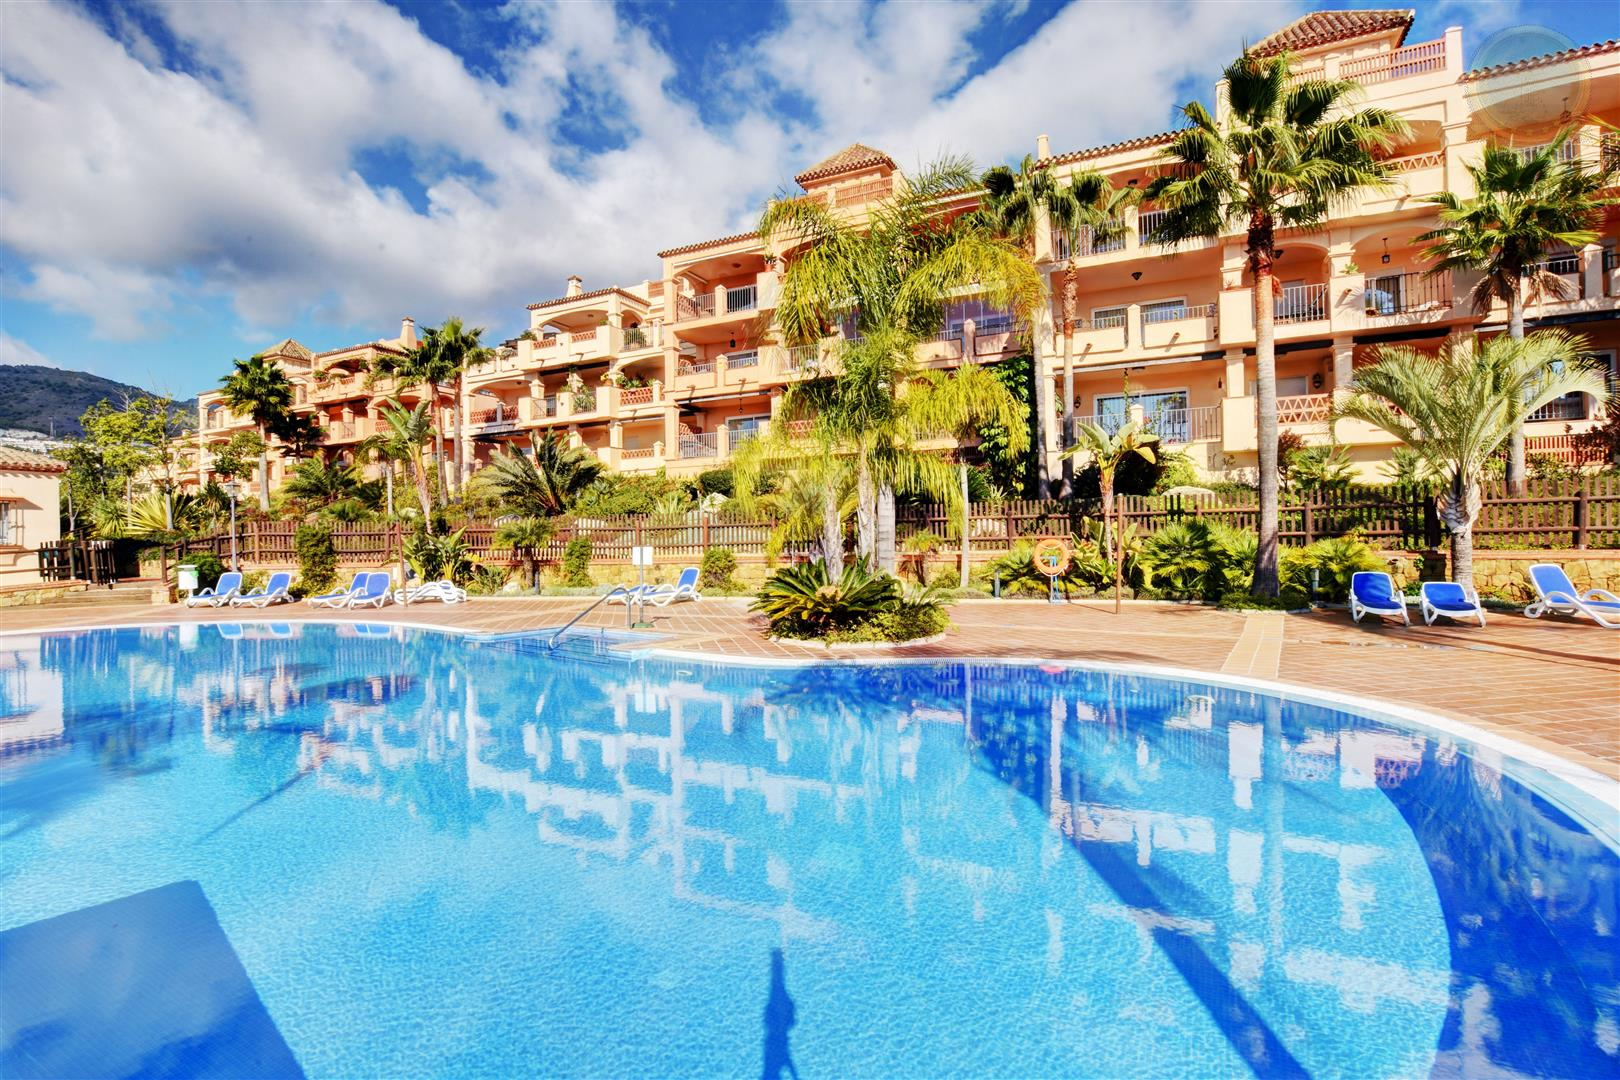 Apartment for Sale in Mediterra - Pool